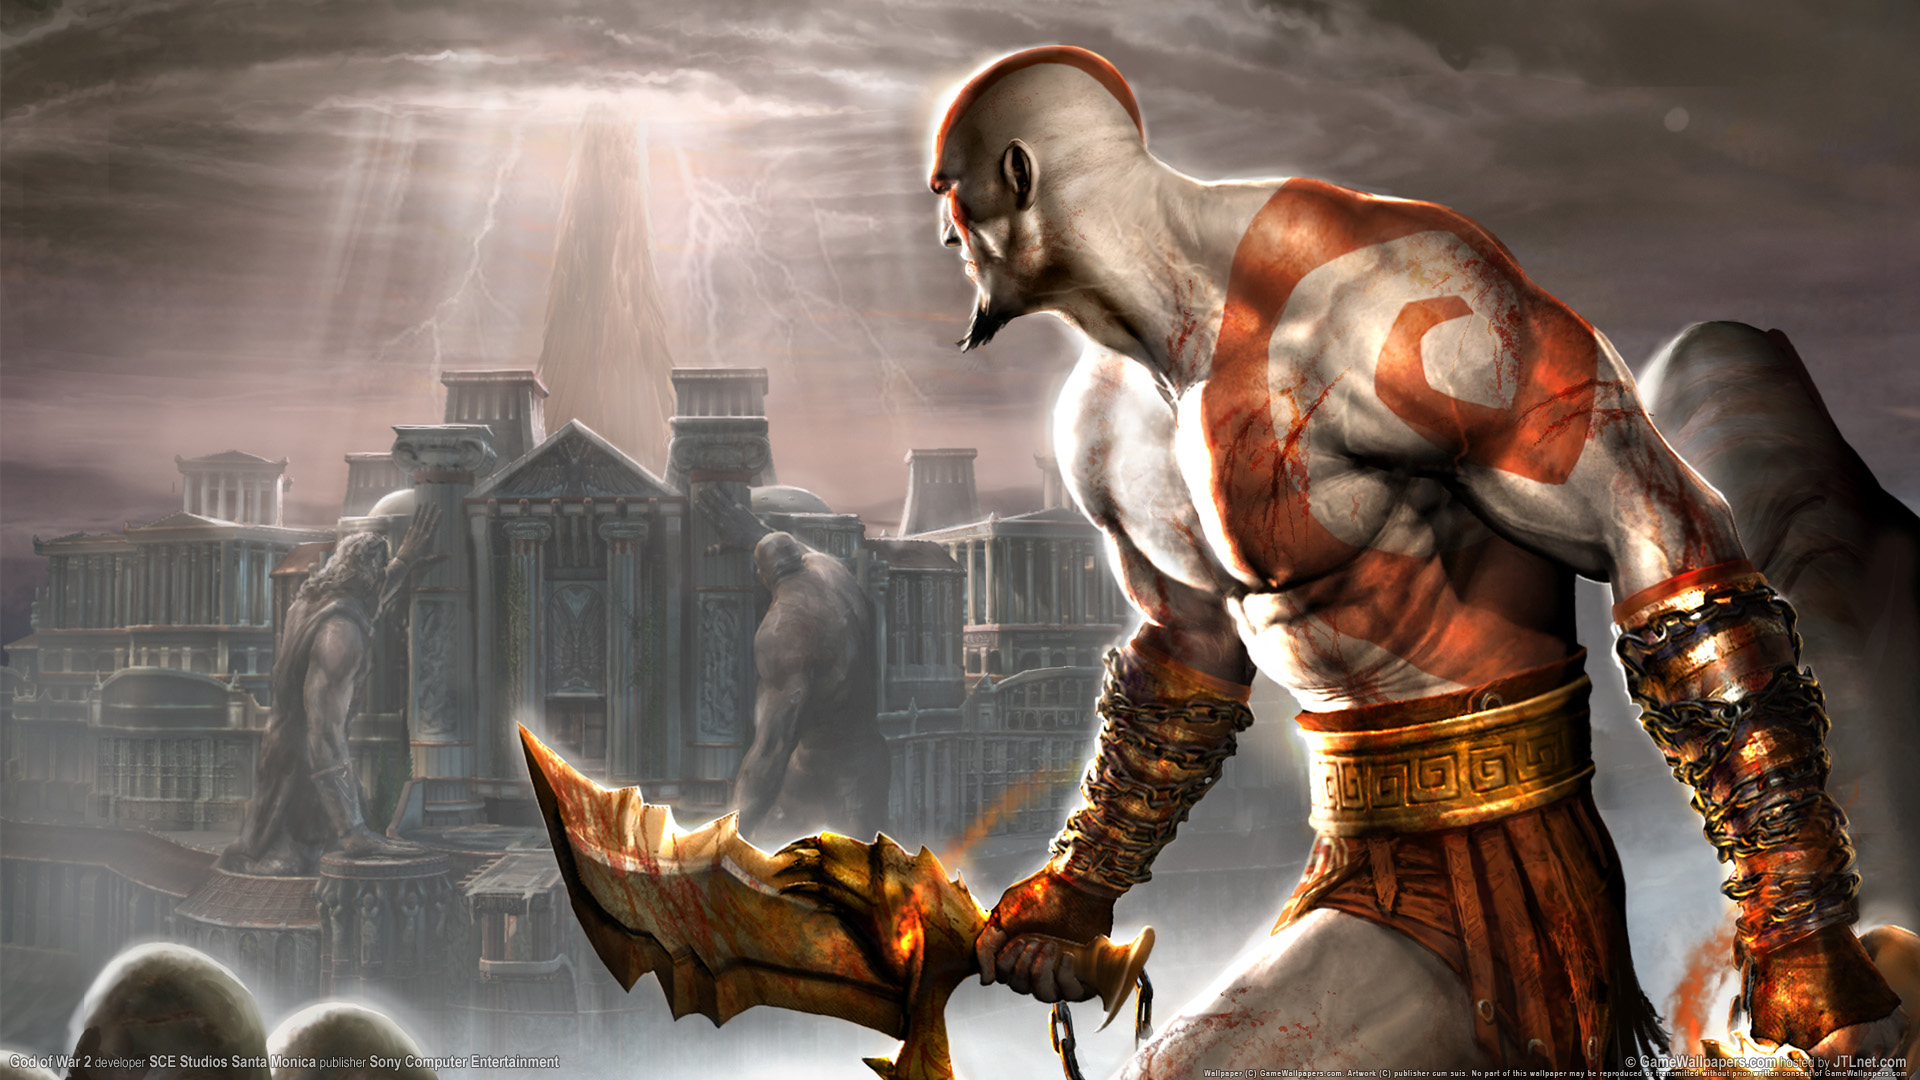 Free Download God Of War 2 Ps2 Game Wallpapers Hd Wallpapers